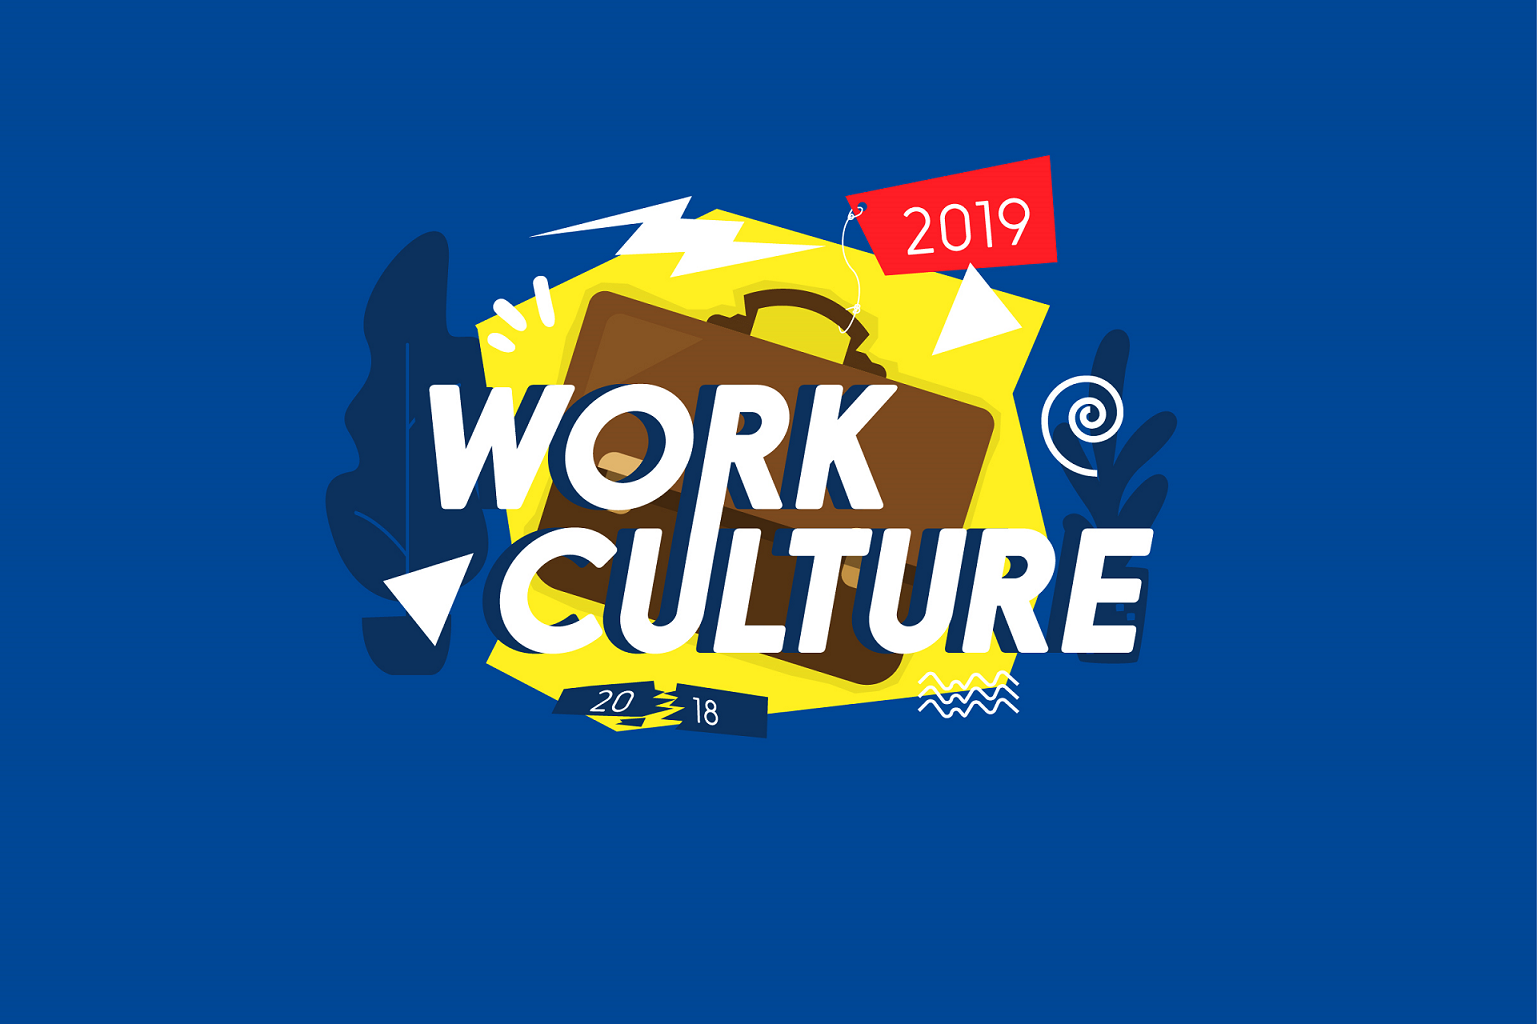 Work Culture Trends and Changes 2019